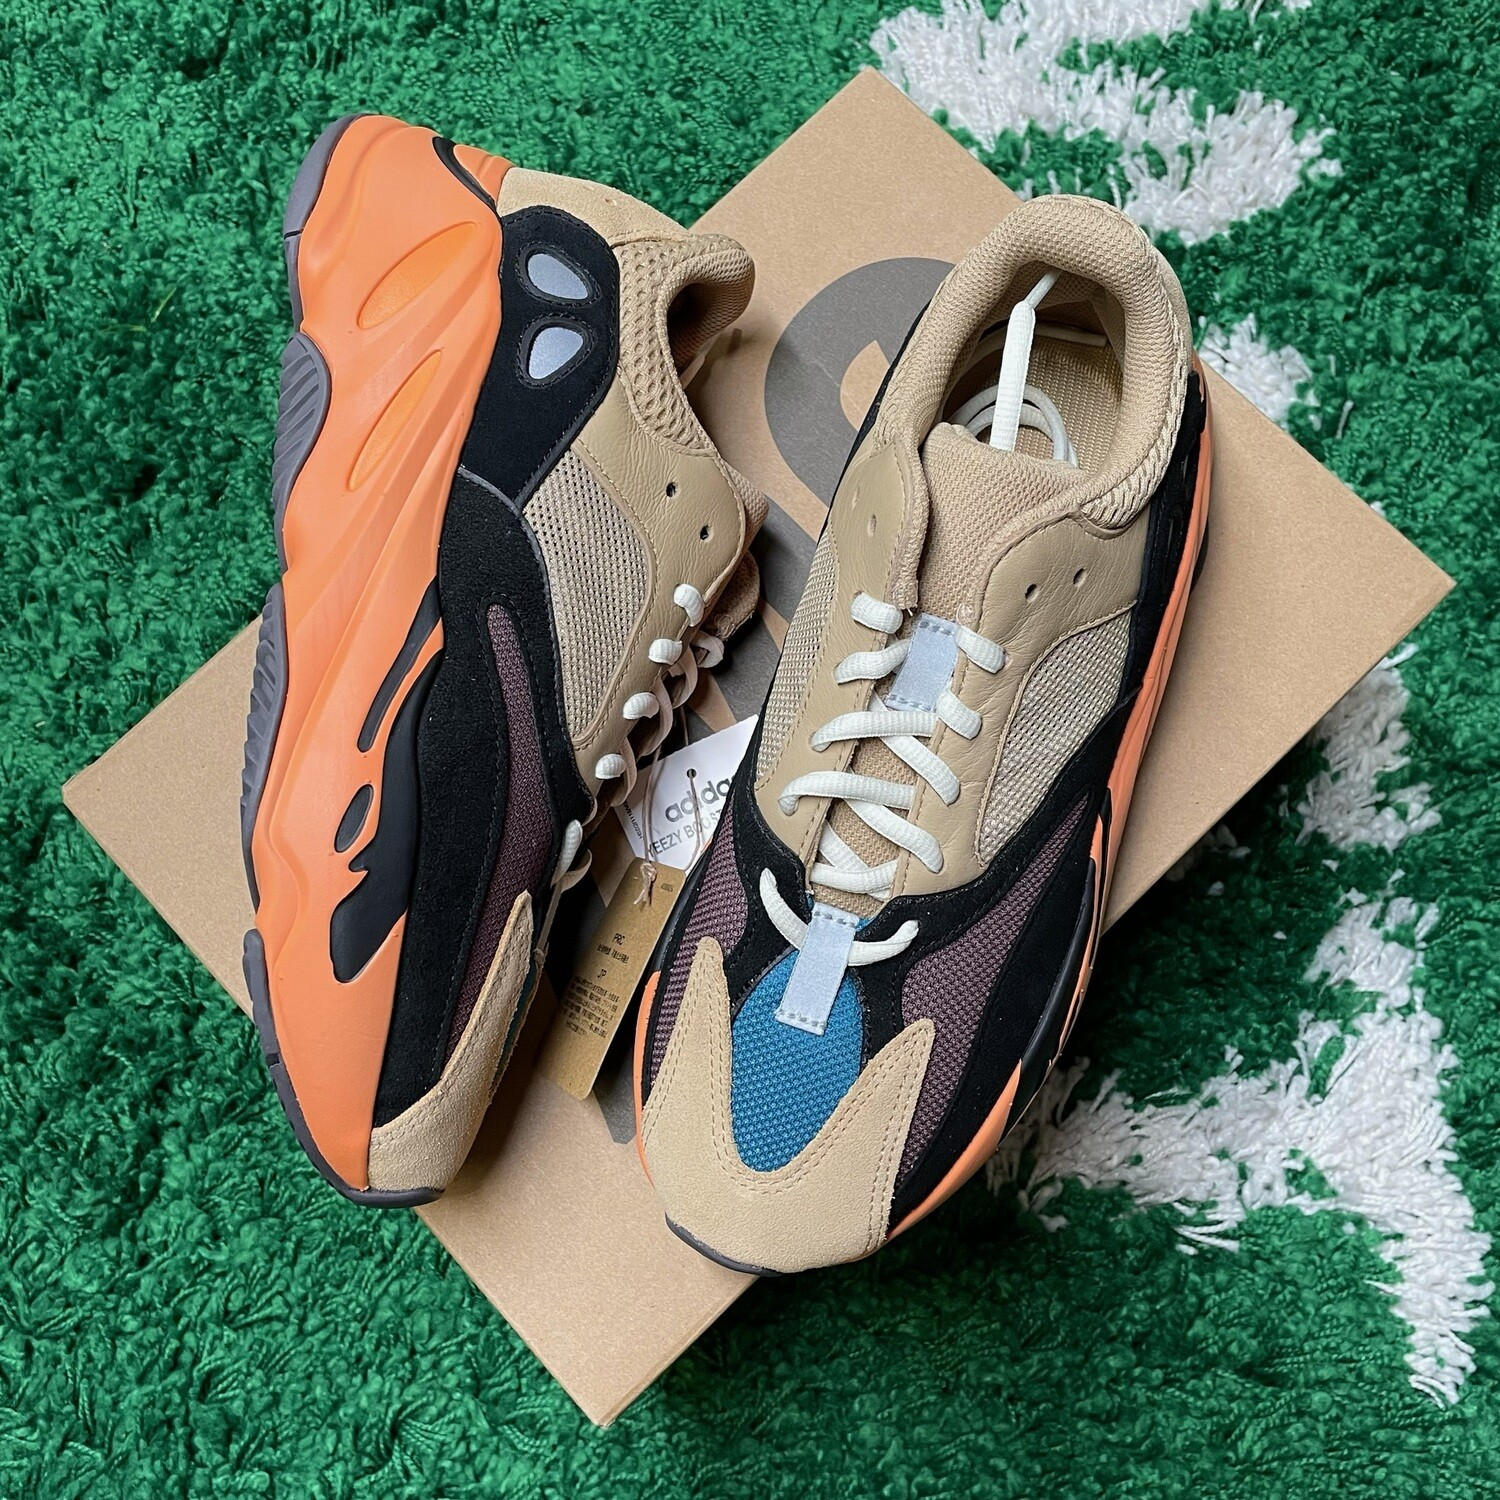 Adidas Yeezy Boost 700 Enflame Amber Size 8.5